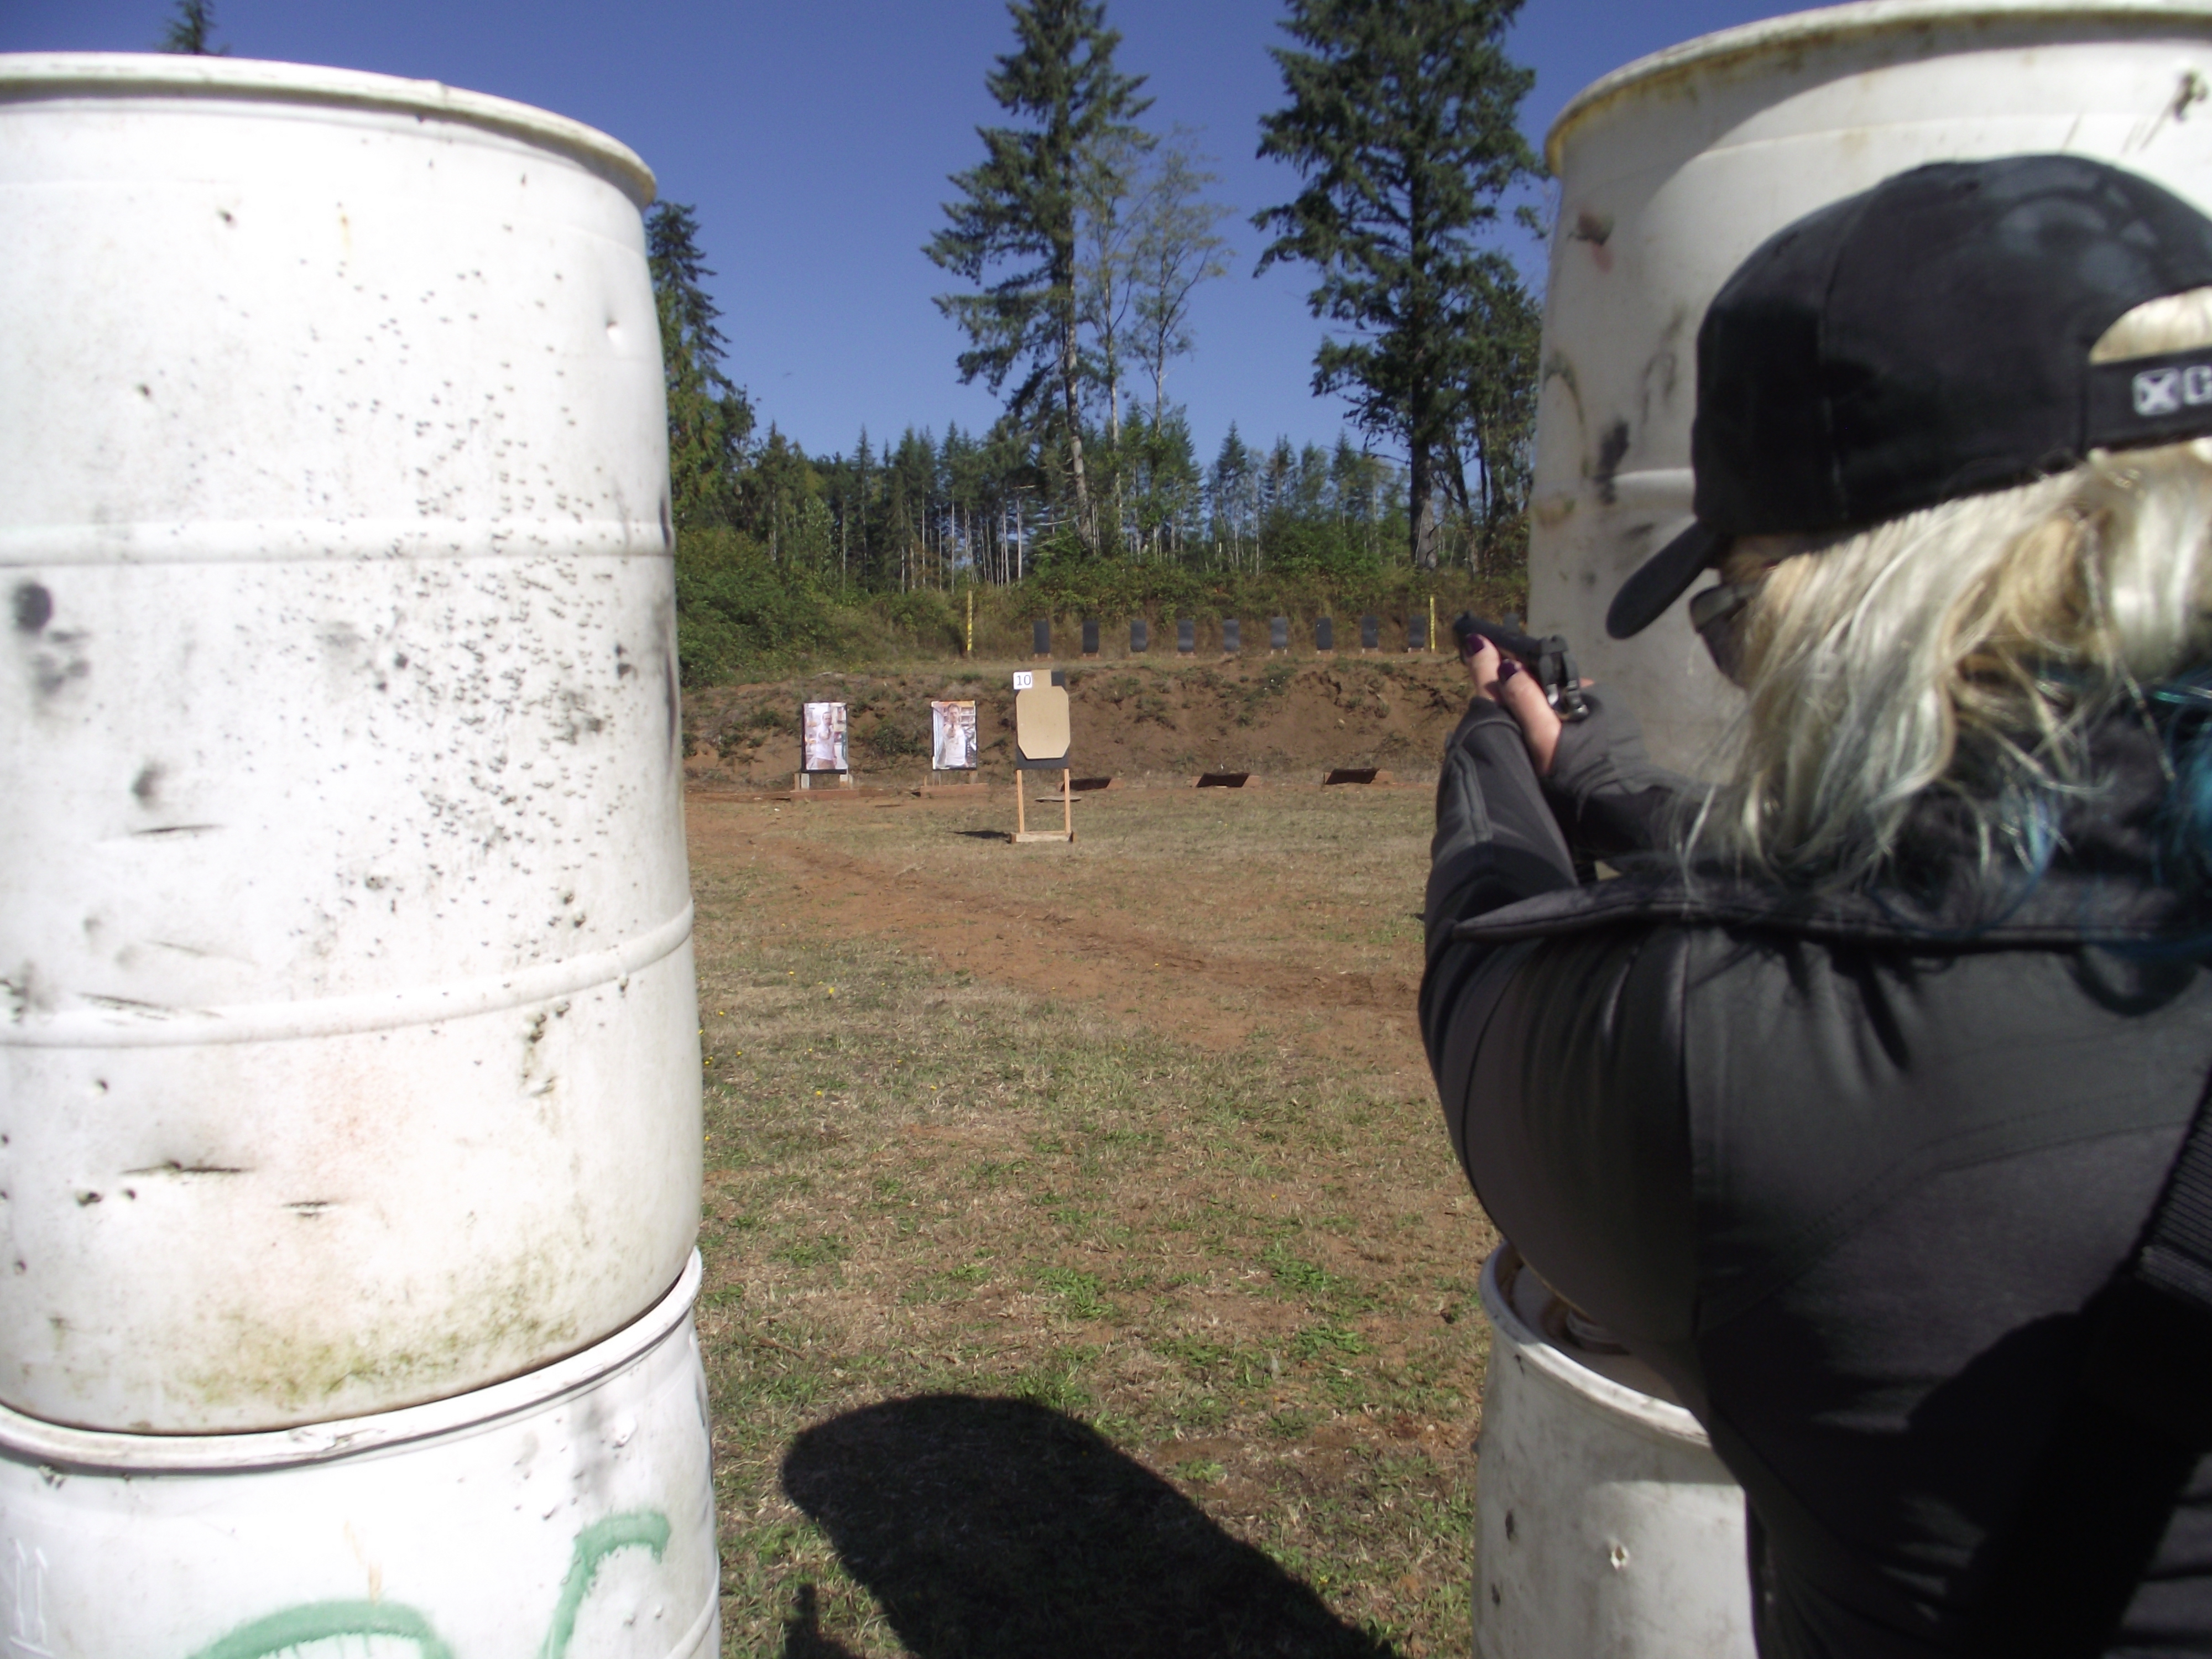 shooter, active shooter, firearms training, Kat Ainsworth, range day, gun range, shooter, self-defense, training, CrossBreed Holsters, gun training, active shooter training